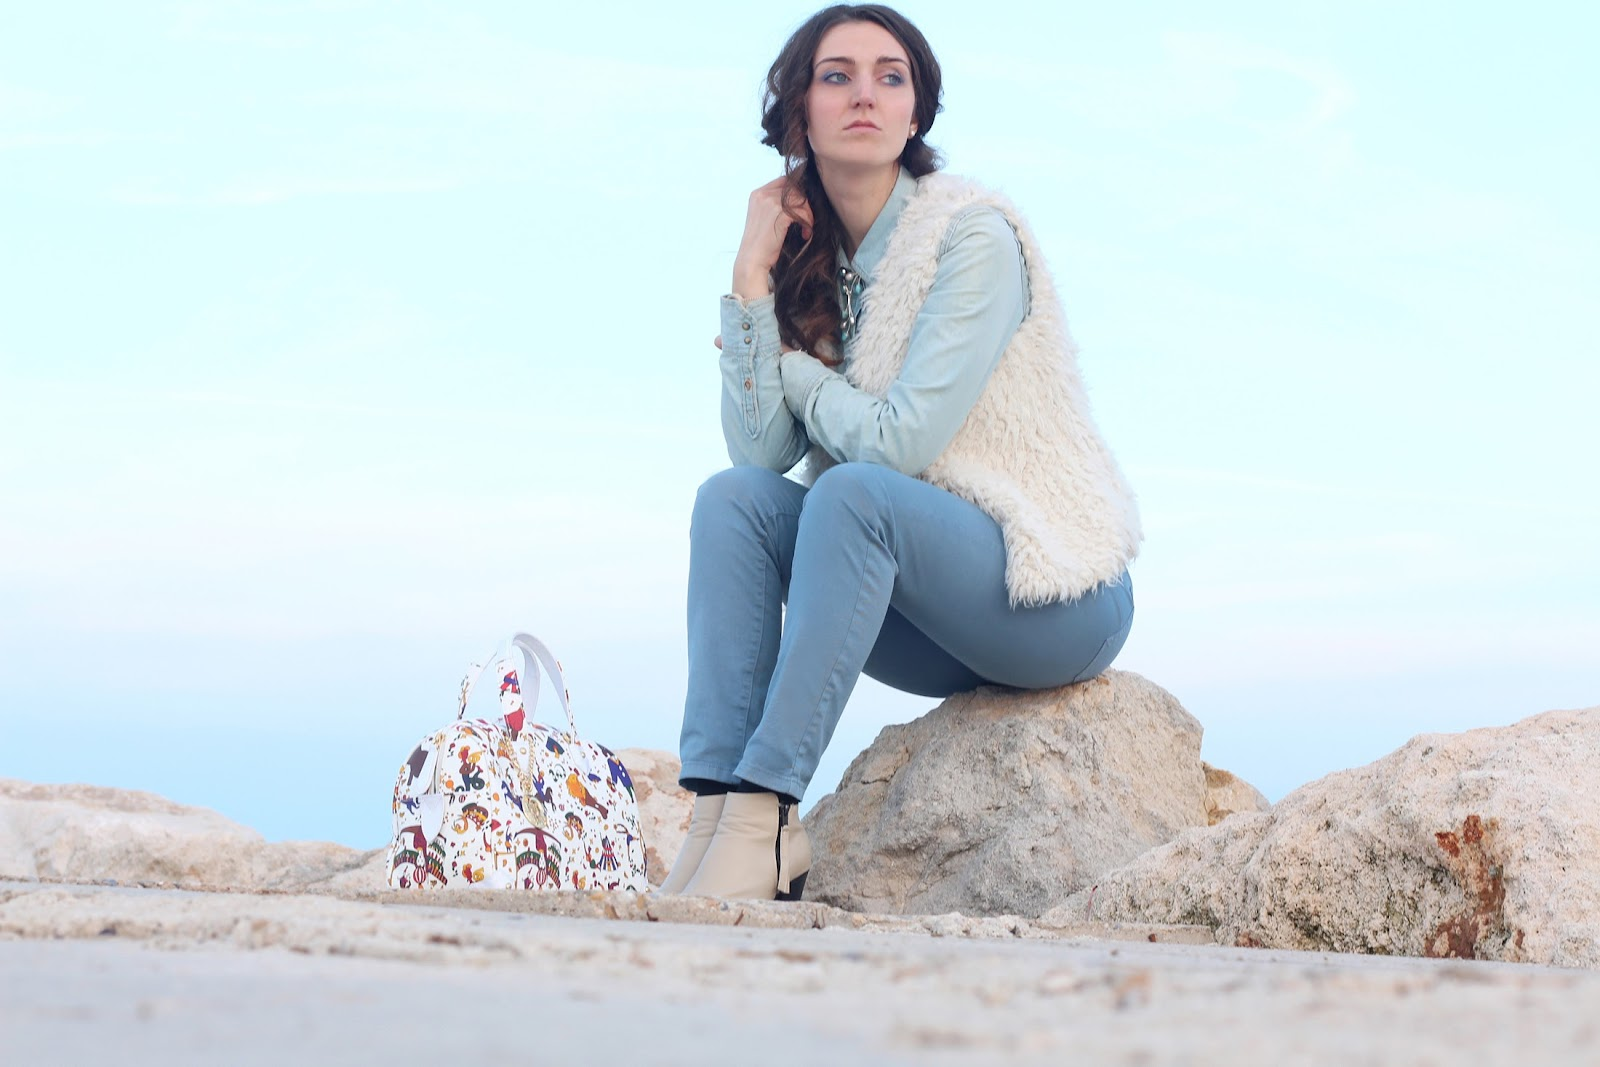 fashion blogger moda pescara italy trend glamour vogue piero guidi bag borsa white circus denim shirt zara pants hm pimkie boots fur gilet curly hair larimar necklace collana ops swatch